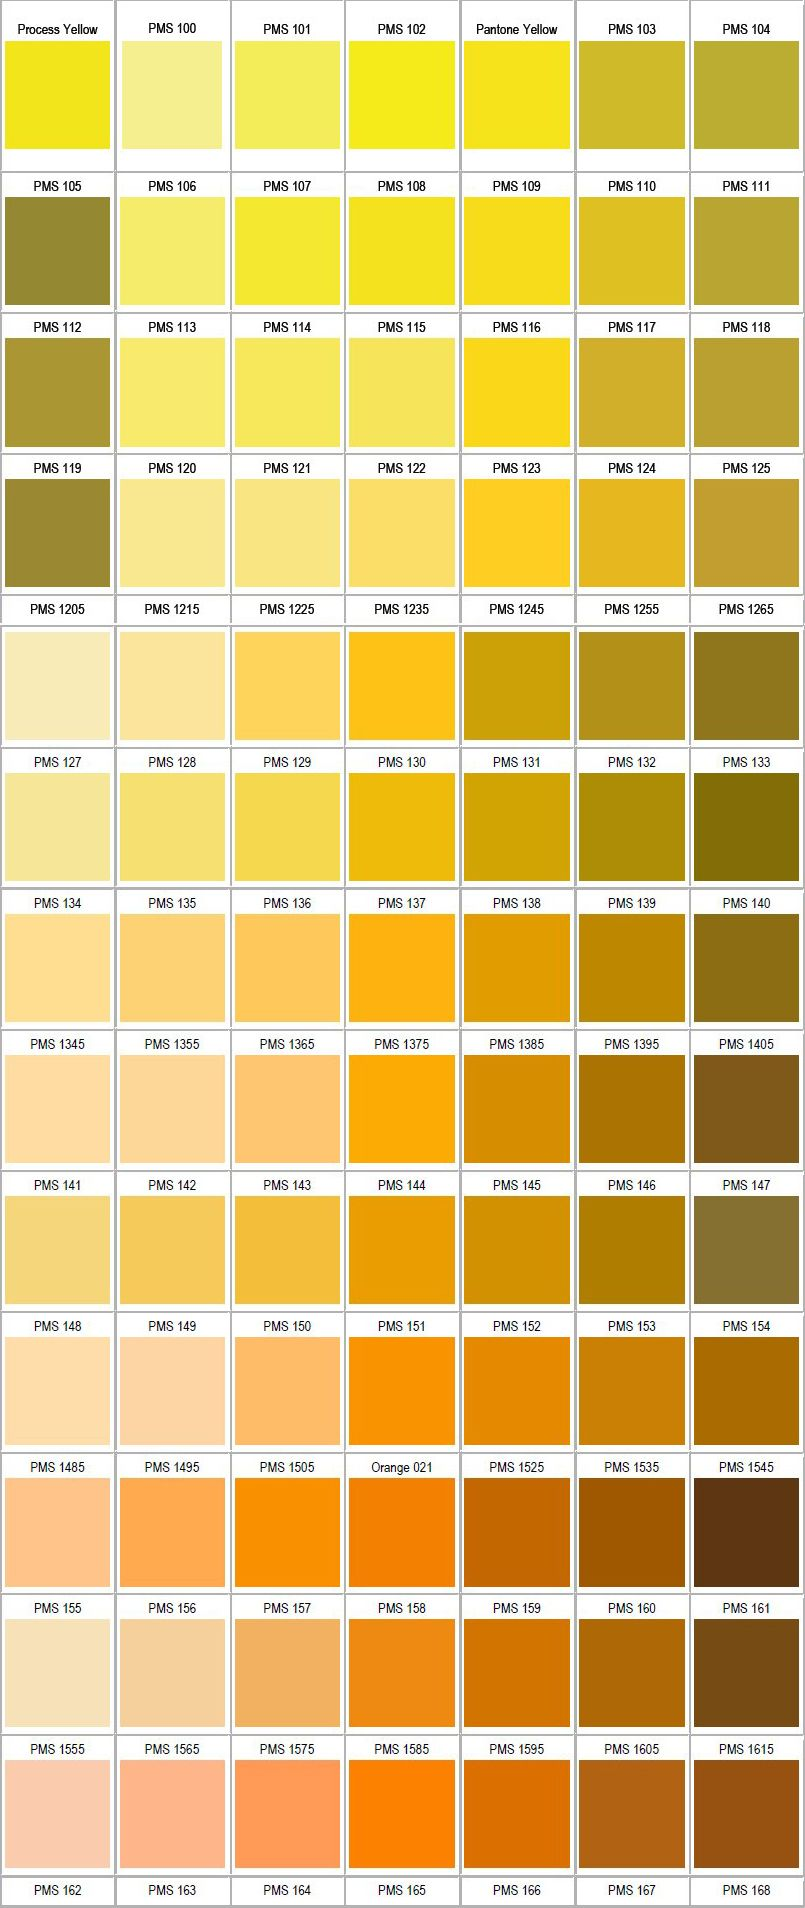 So many gorgeous shades of PANTONE yellow.